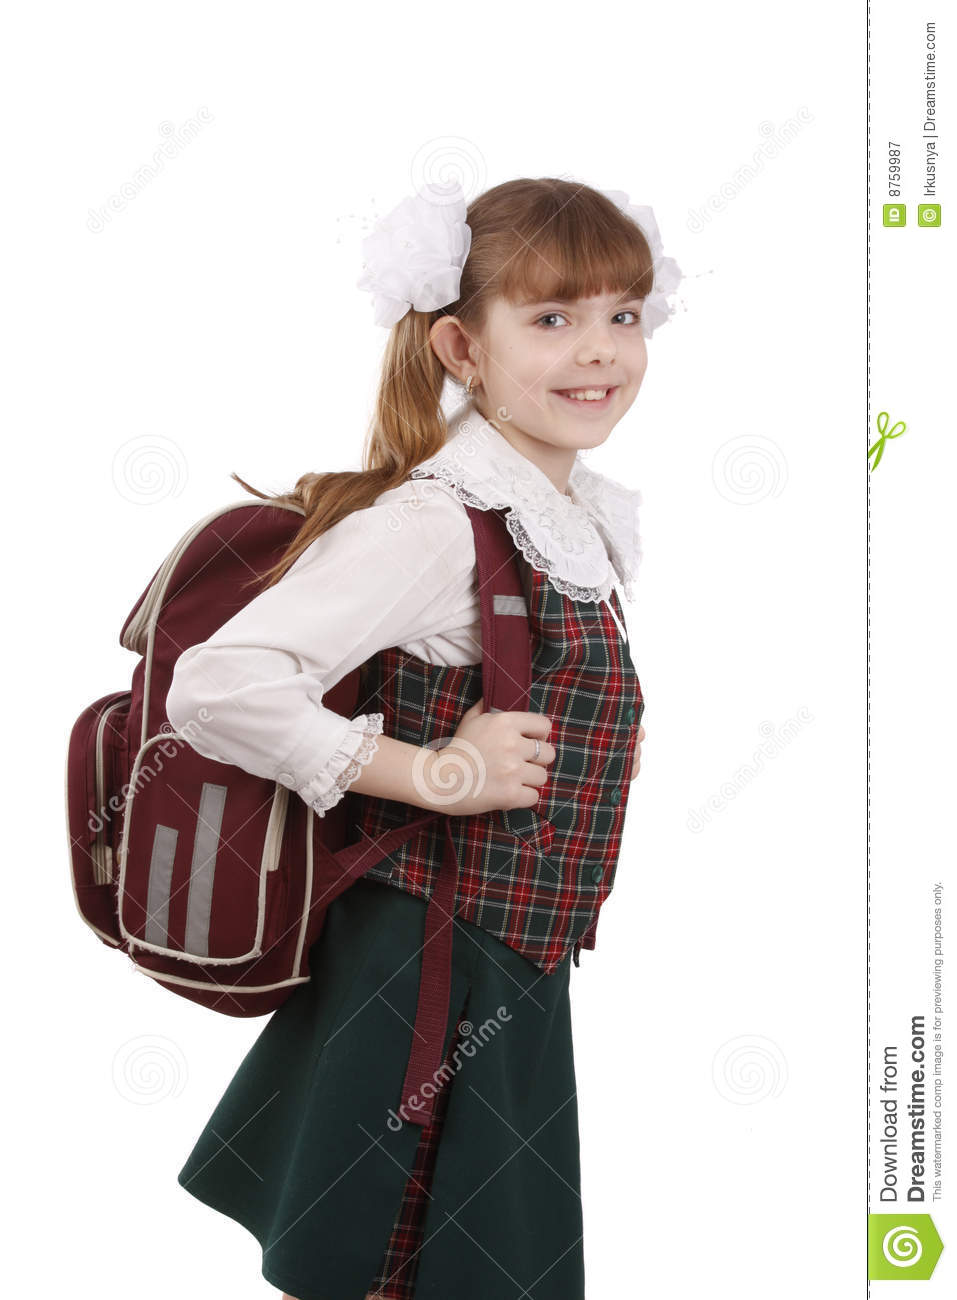 School Girl With Schoolbag. Education. Stock Image - Image ...